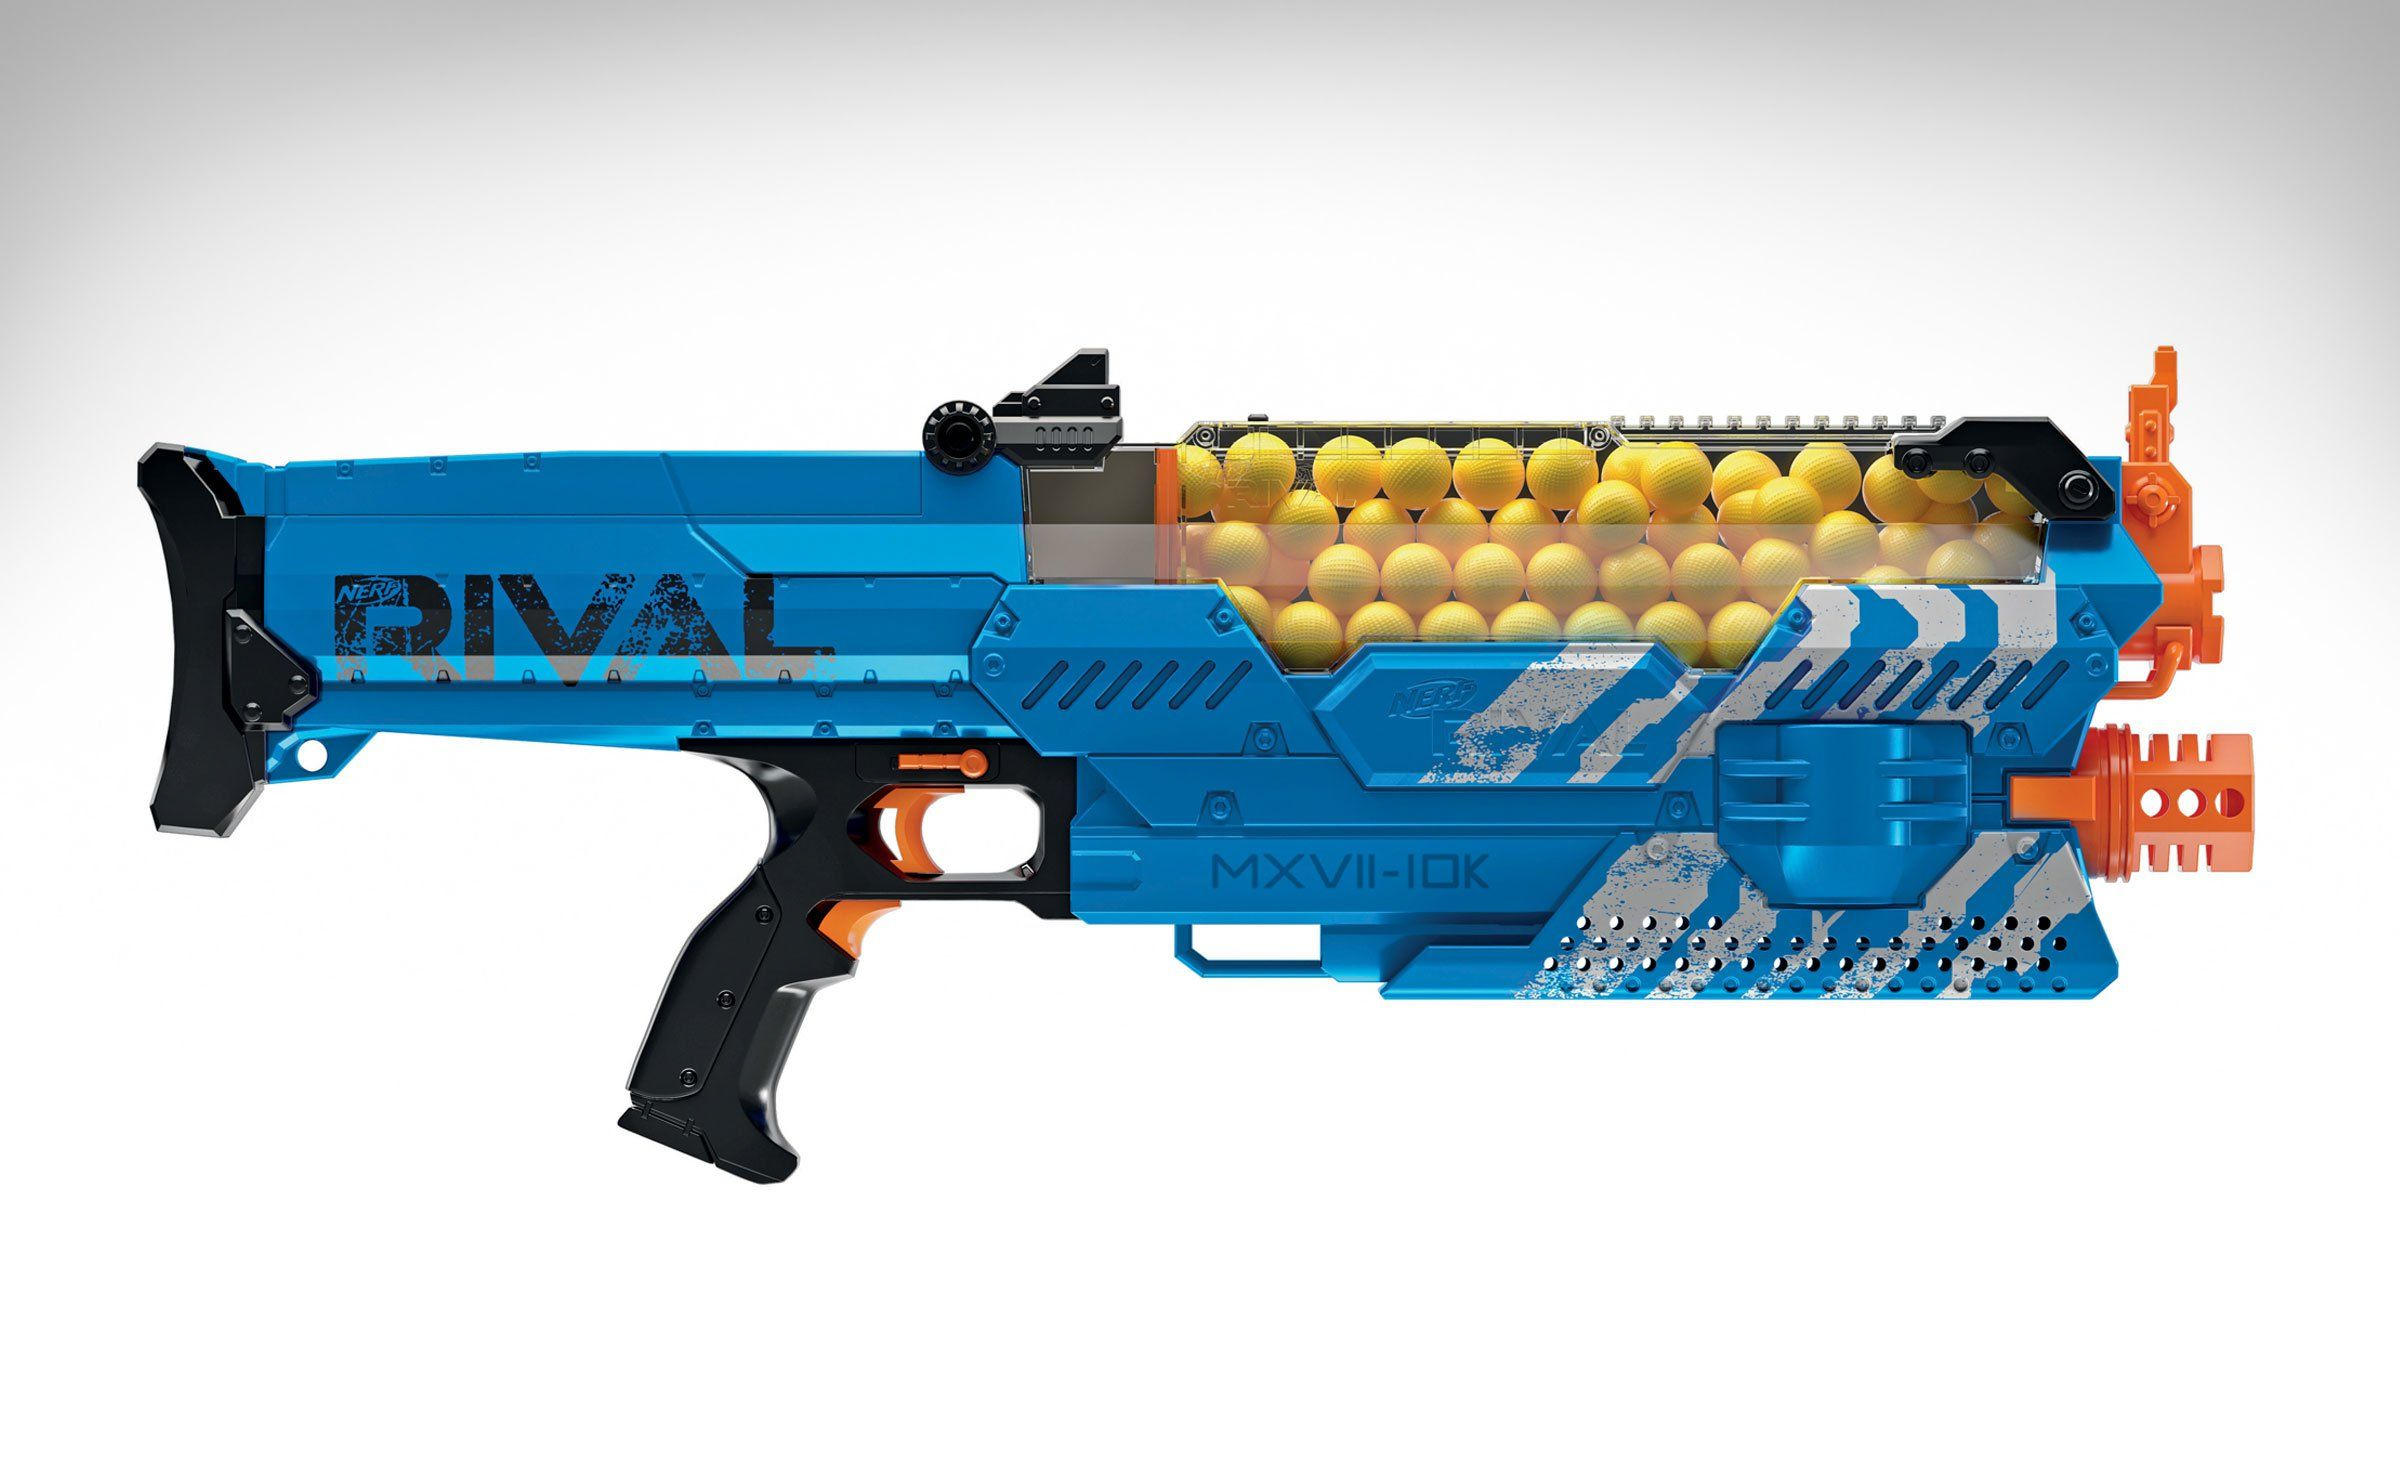 Nerf really doesn t want us modifying their guns for added range or power